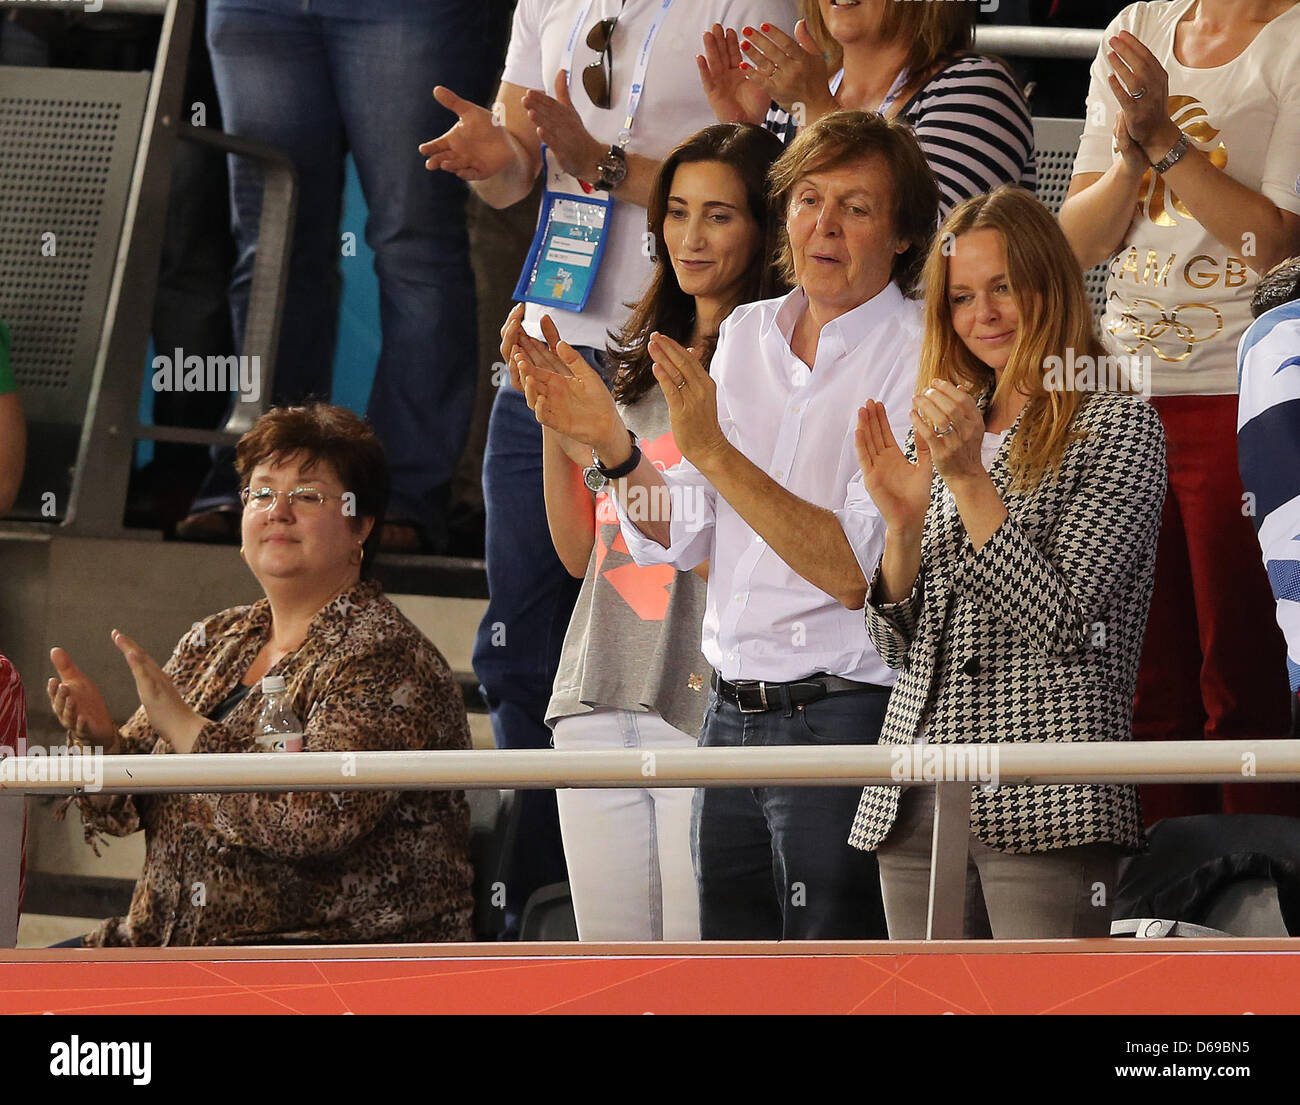 Ex Beatles Sir Paul Mccartney C Attends With His Wife Nancy Stock Photo Alamy